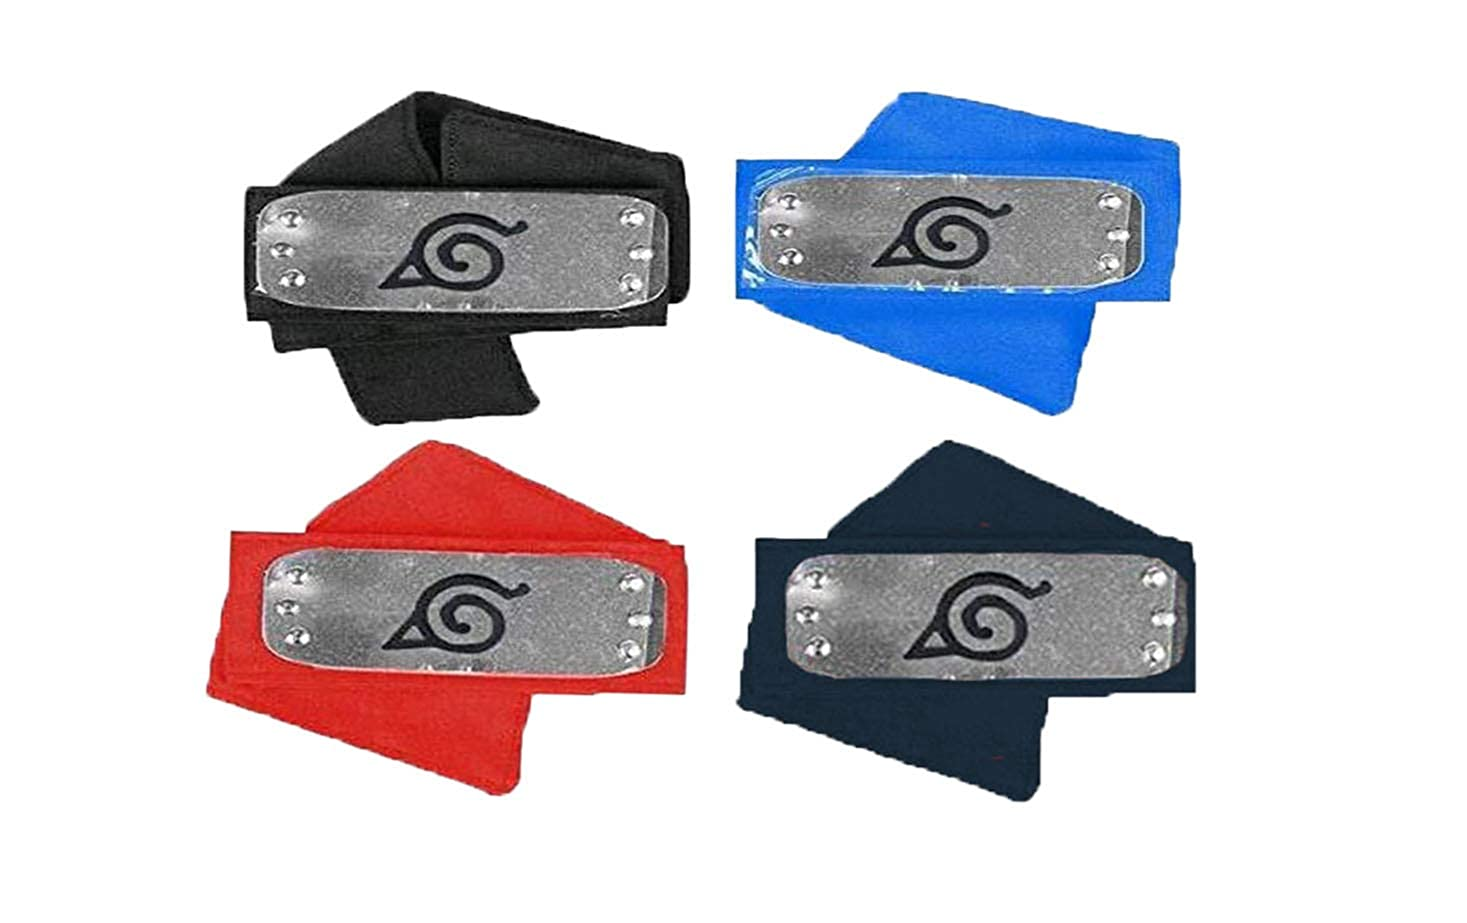 Master Online Naruto Headband, Colored Naruto Headband Plastic Toy with Metal Plated Cosplay Leaf Village Ninja Kakashi (4 Colors)